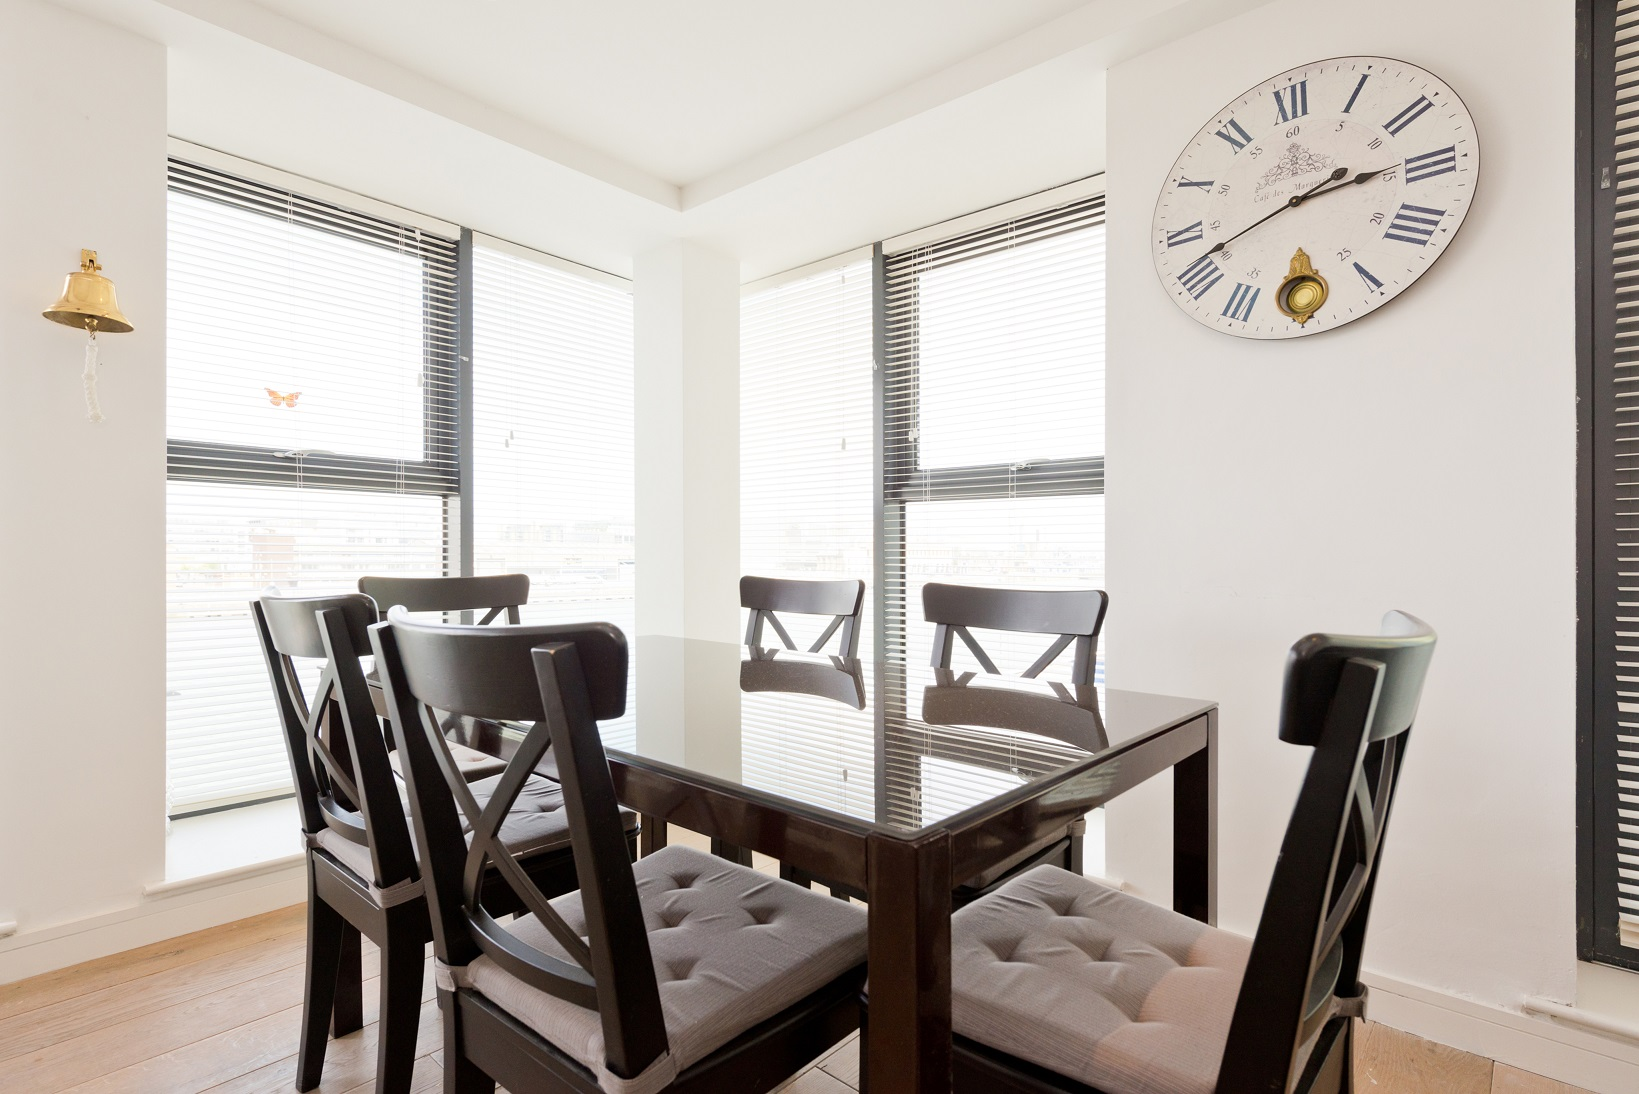 Dining area at Butlers Court Apartments, North Wall, Dublin